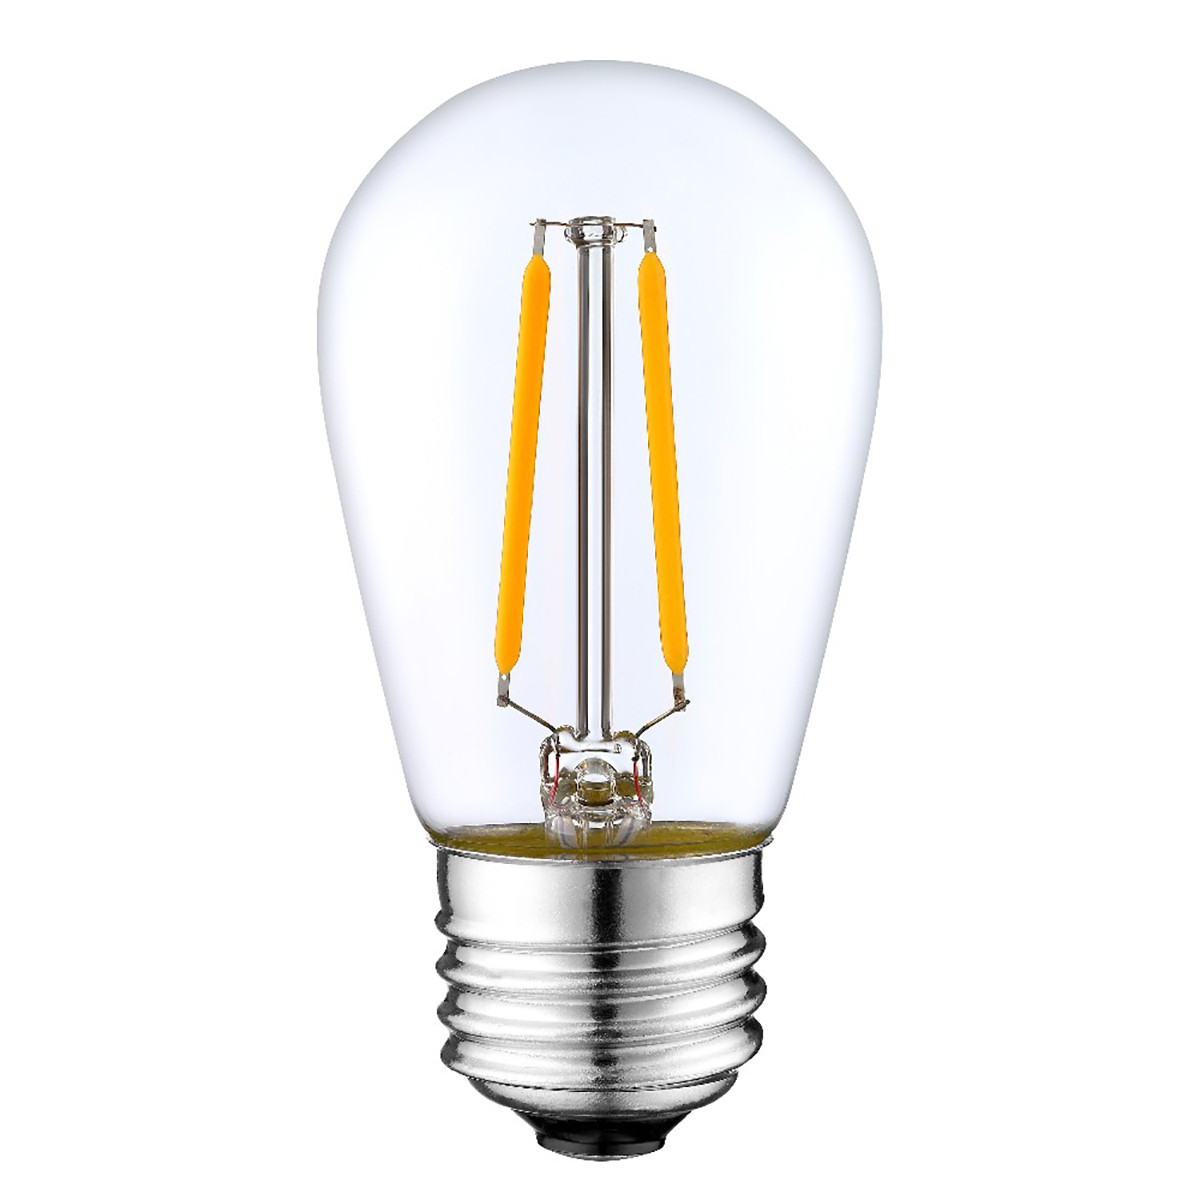 2W Filament LED T-Shape Light Bulb Light S14 Chandelier Bulb with E26 Base 20W Equivalent Halogen Replacement